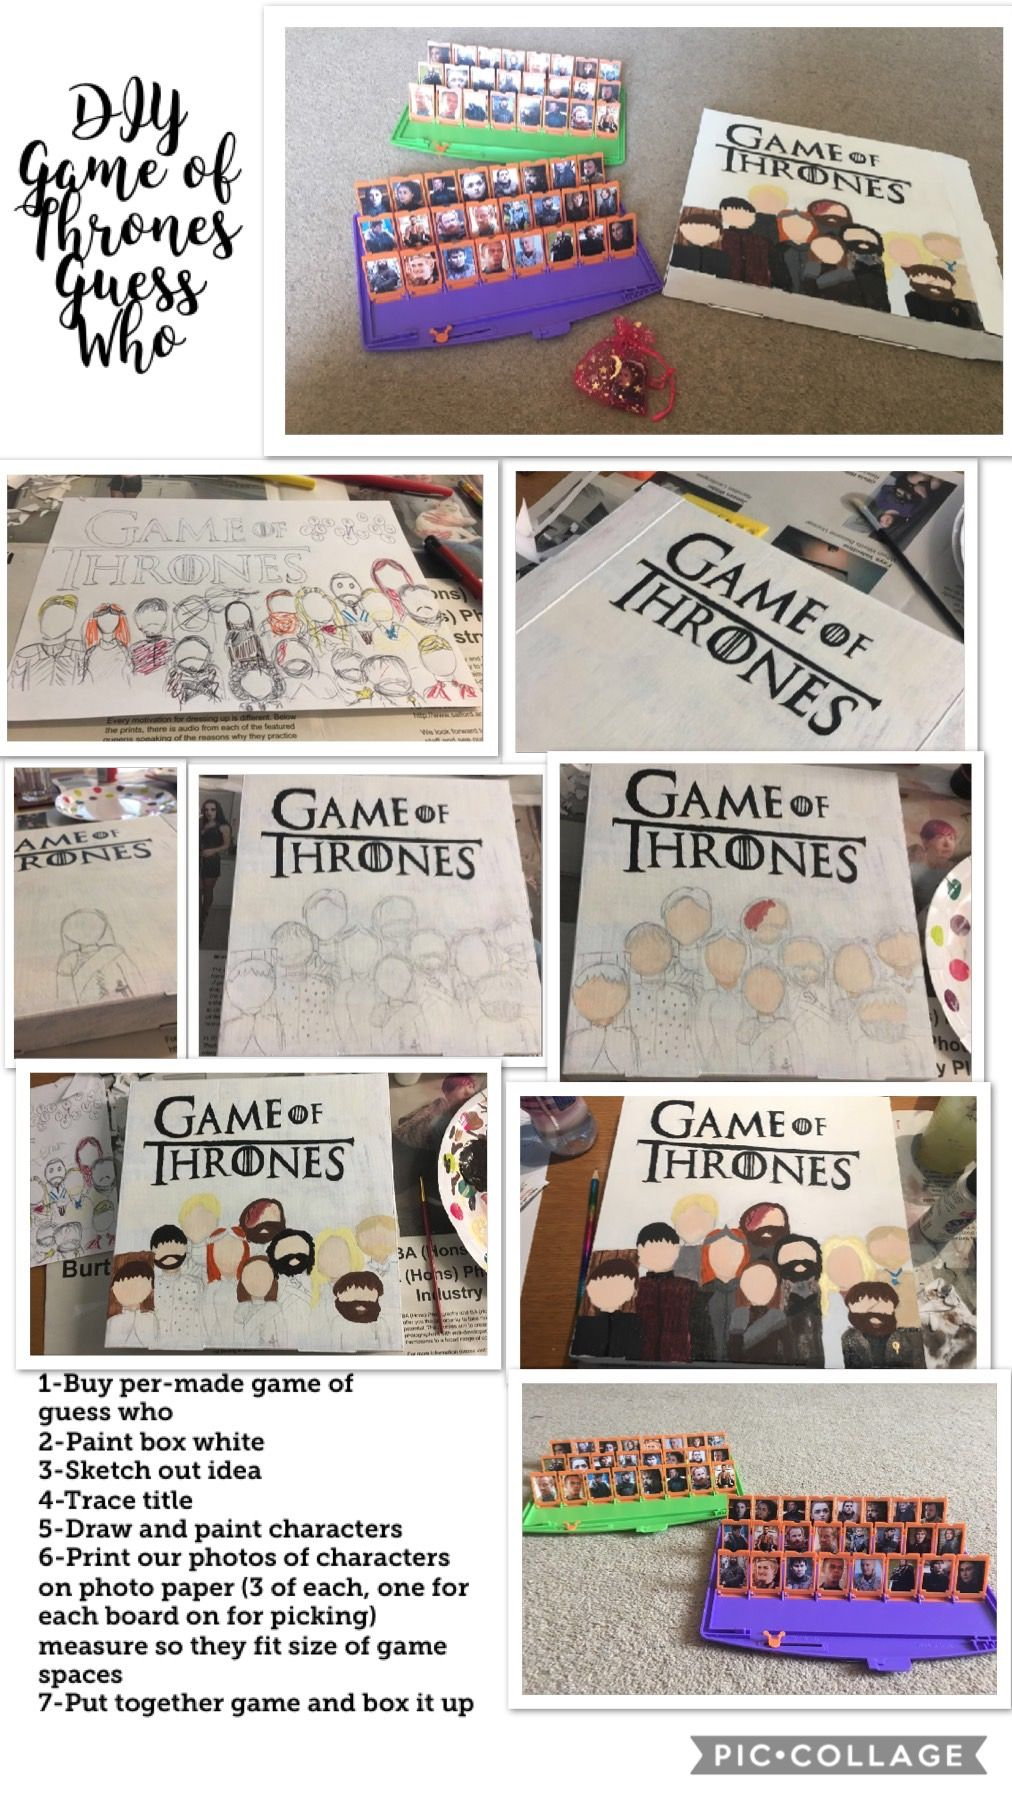 Game of Thrones Guess WhoDIY Present Diy presents